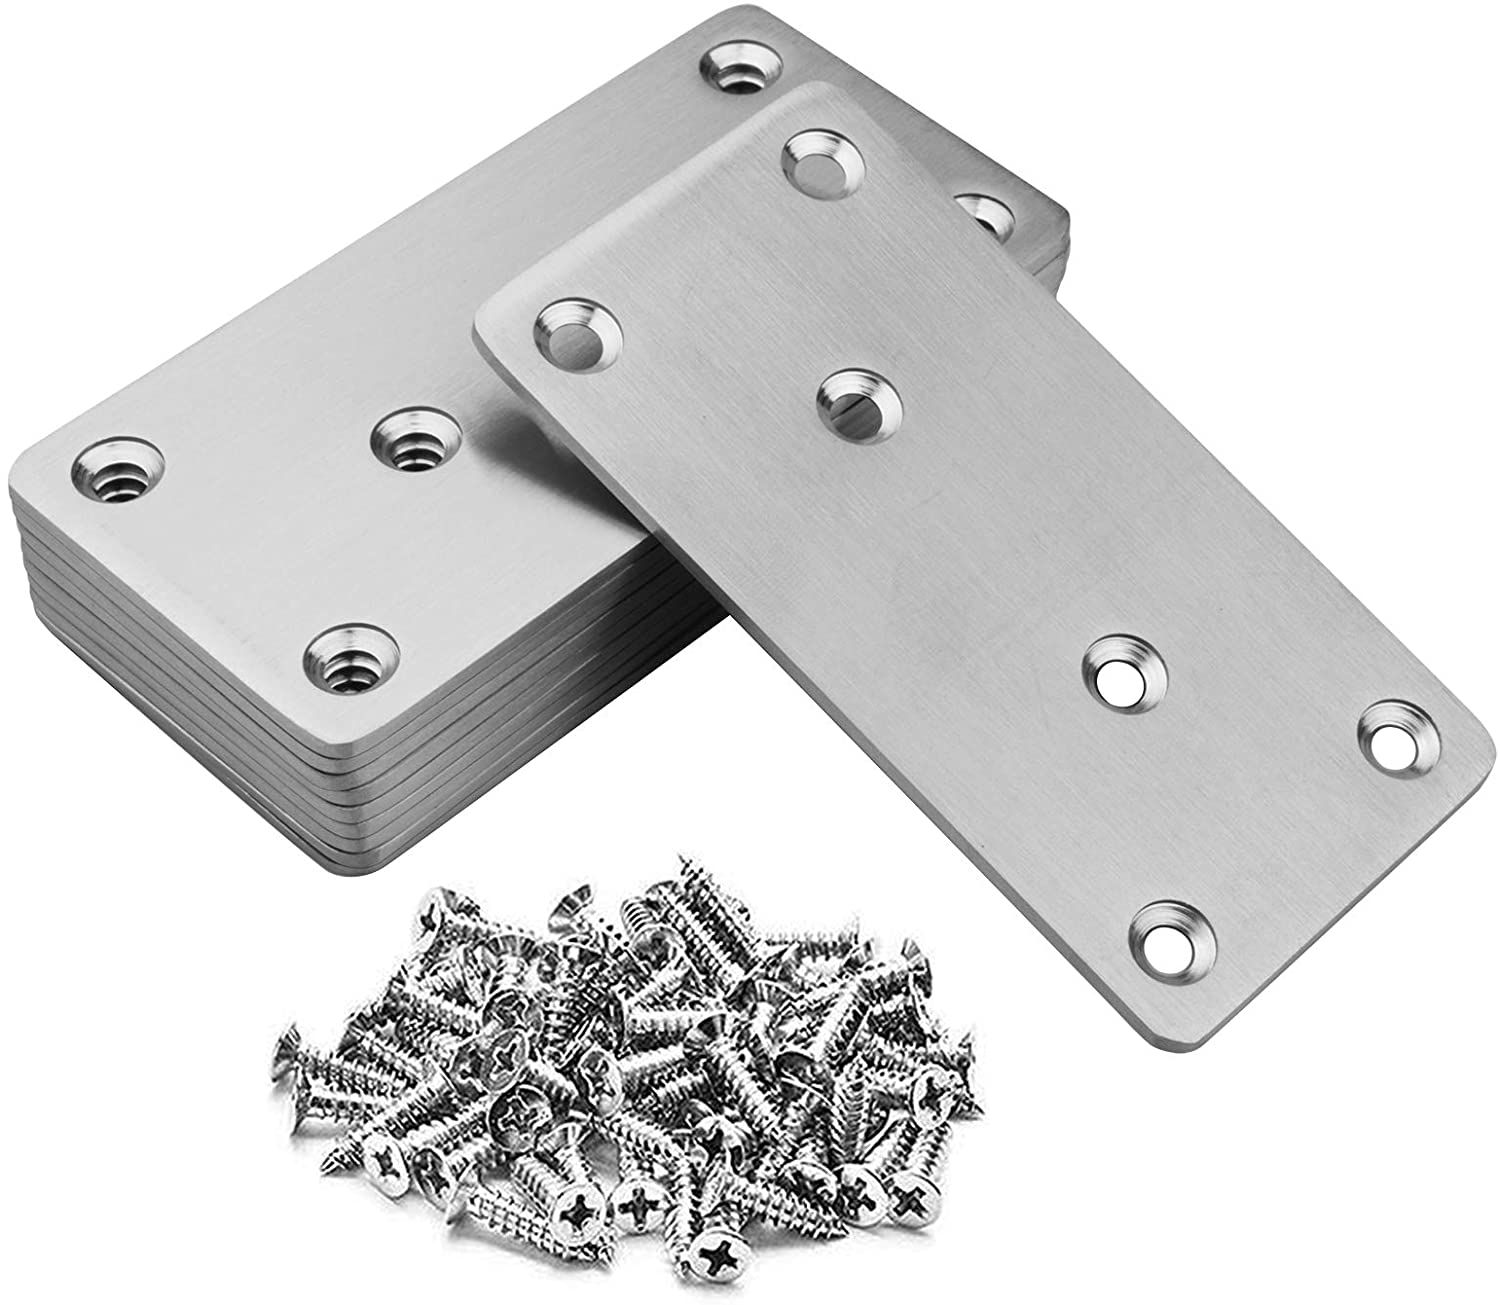 10 Pack Flat Mending Los Angeles Mall Plate Br Straight Free shipping 201 Stainless Steel